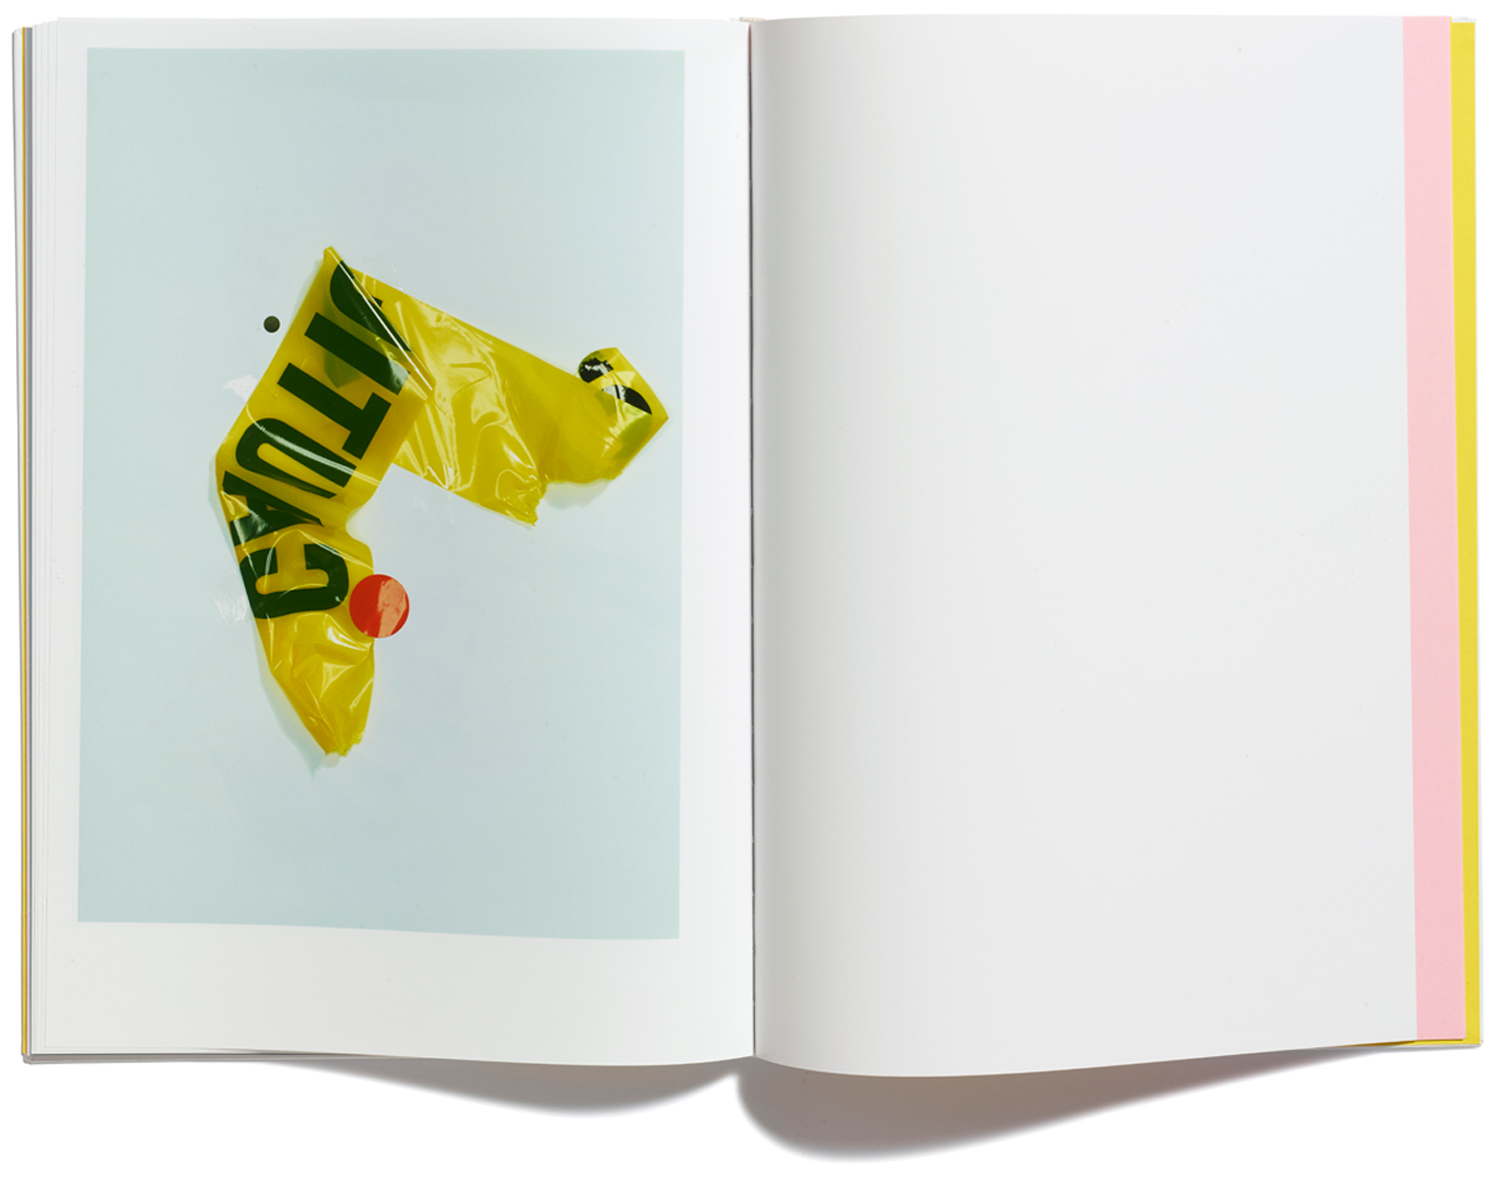 Browns Editions, Browns Editions Publishing, Browns Editions Books, Browns Editions Jonathan Ellery, Browns Editions A Bewildered Herd, Browns Editions Jonathan Ellery A Bewildered Herd